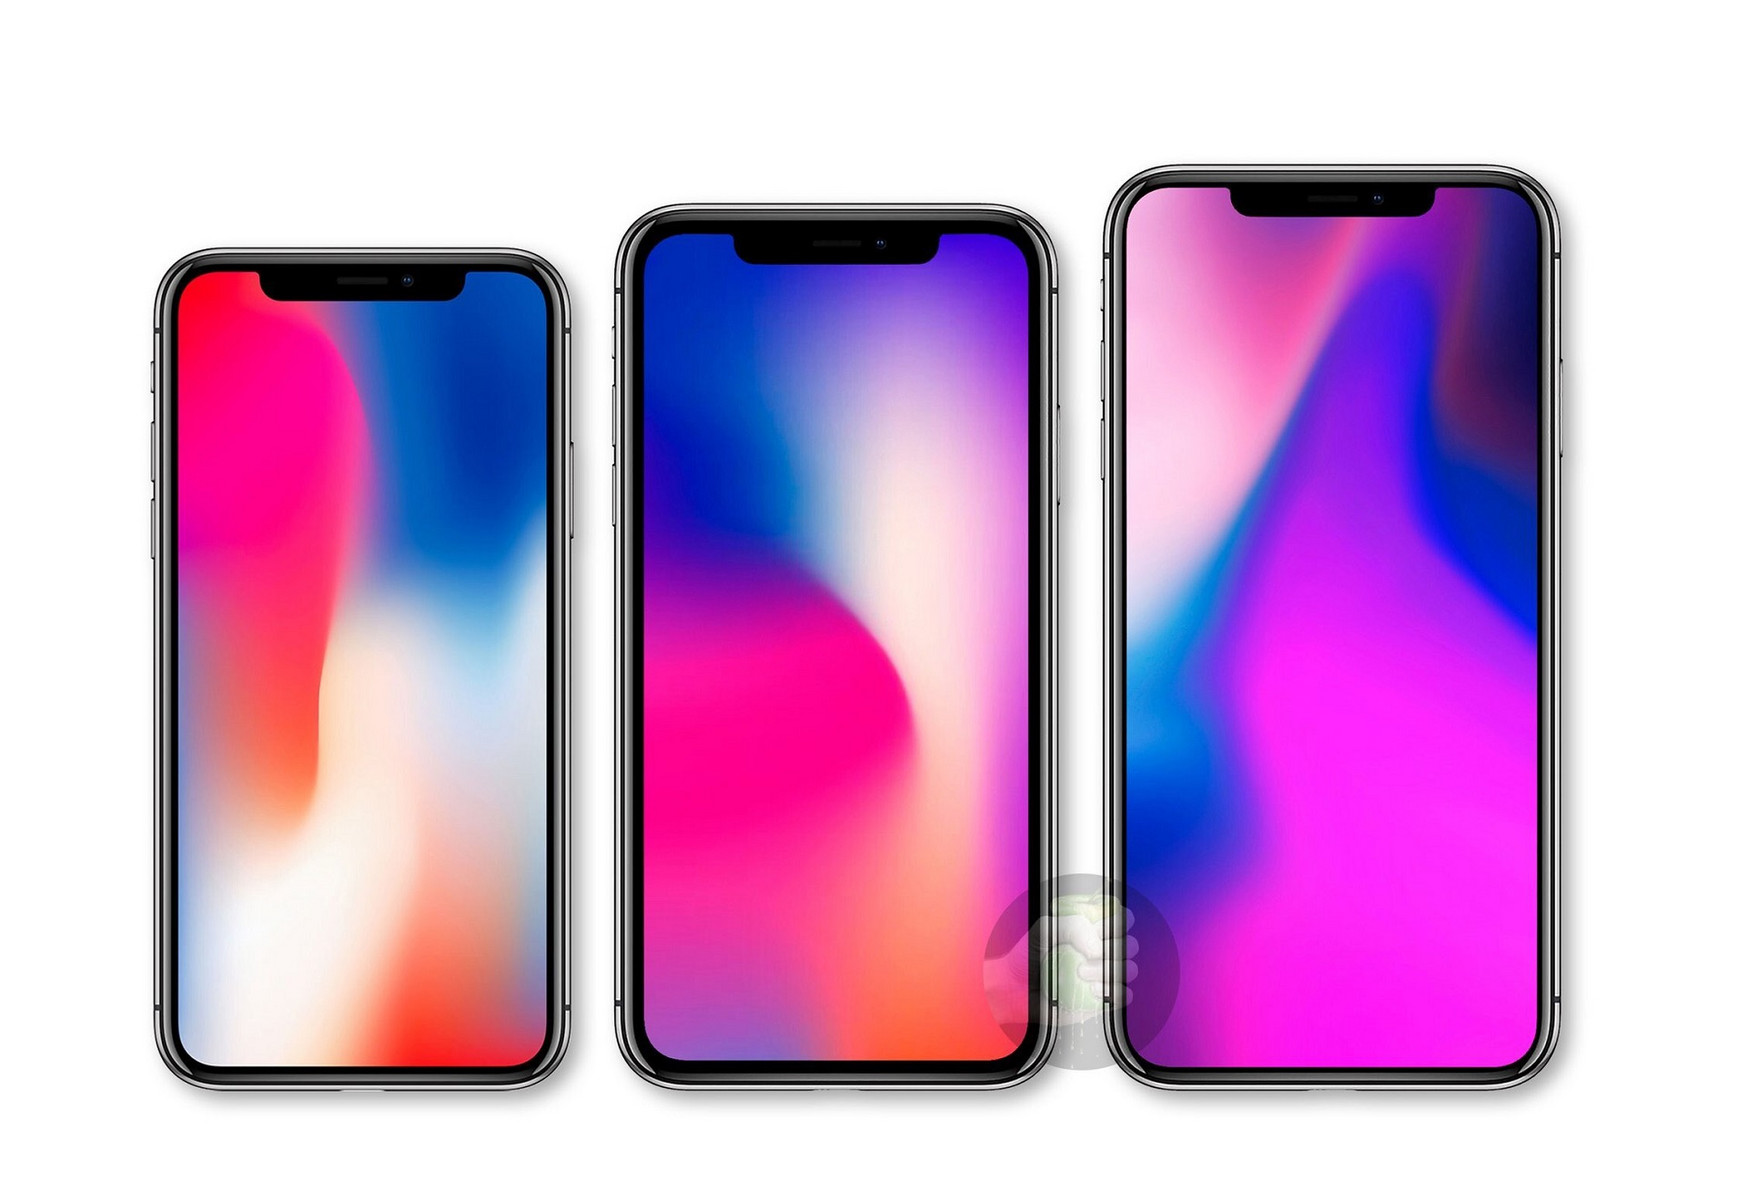 apple leak iphone 9 iphone x 2018 iphone x plus. Black Bedroom Furniture Sets. Home Design Ideas